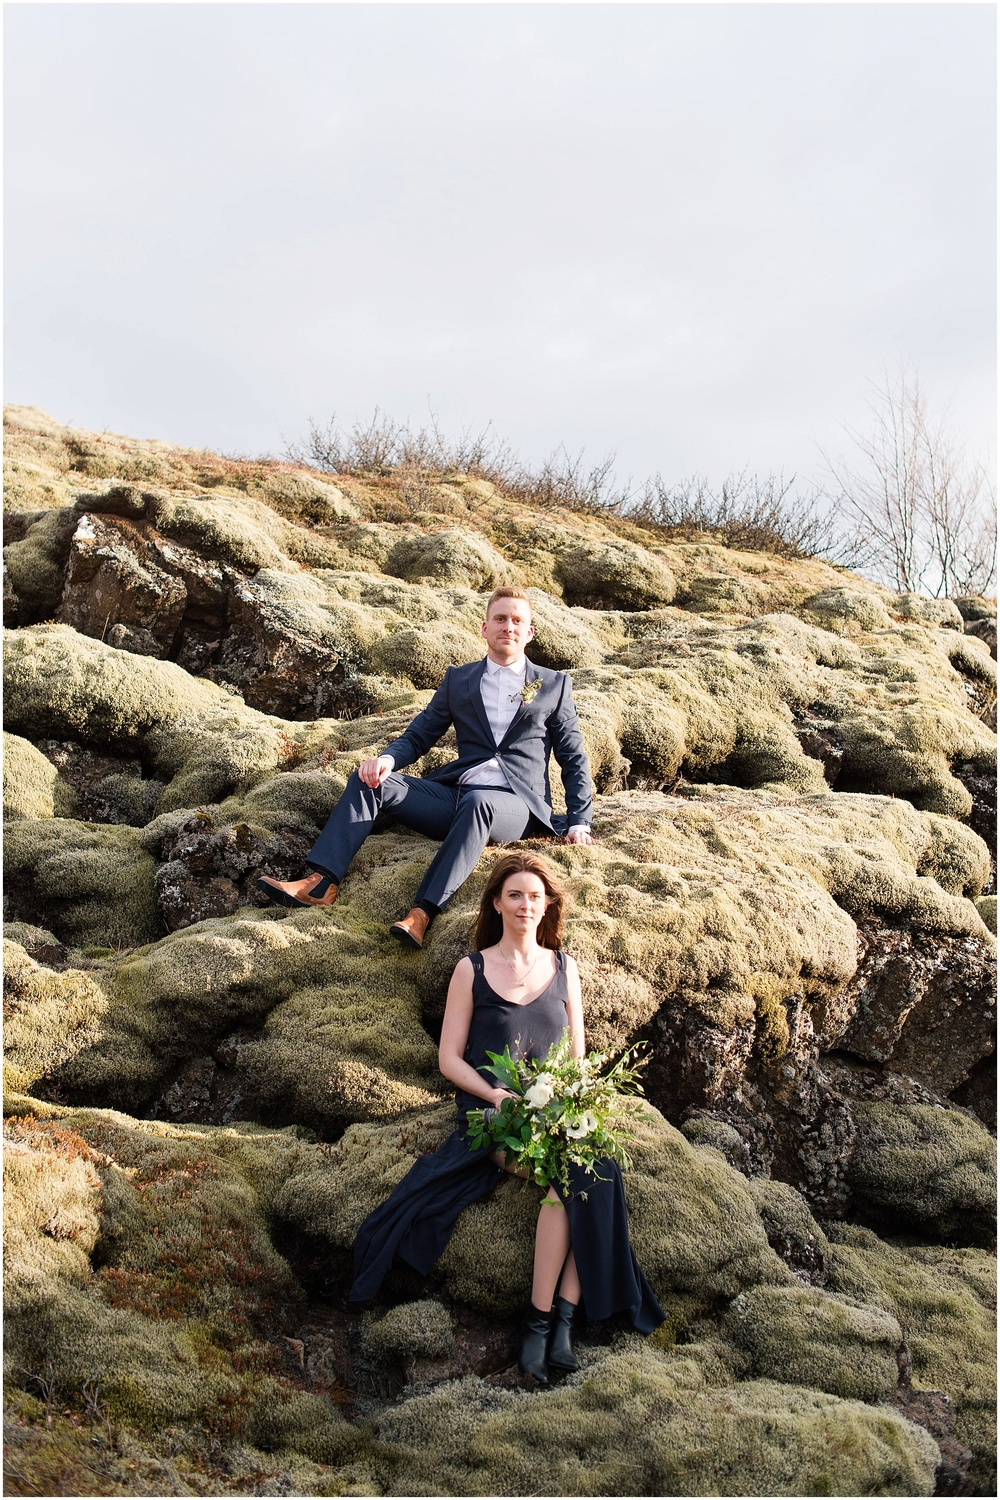 Hannah Leigh Photography Iceland Engagement Session Þingvellir_0746.jpg